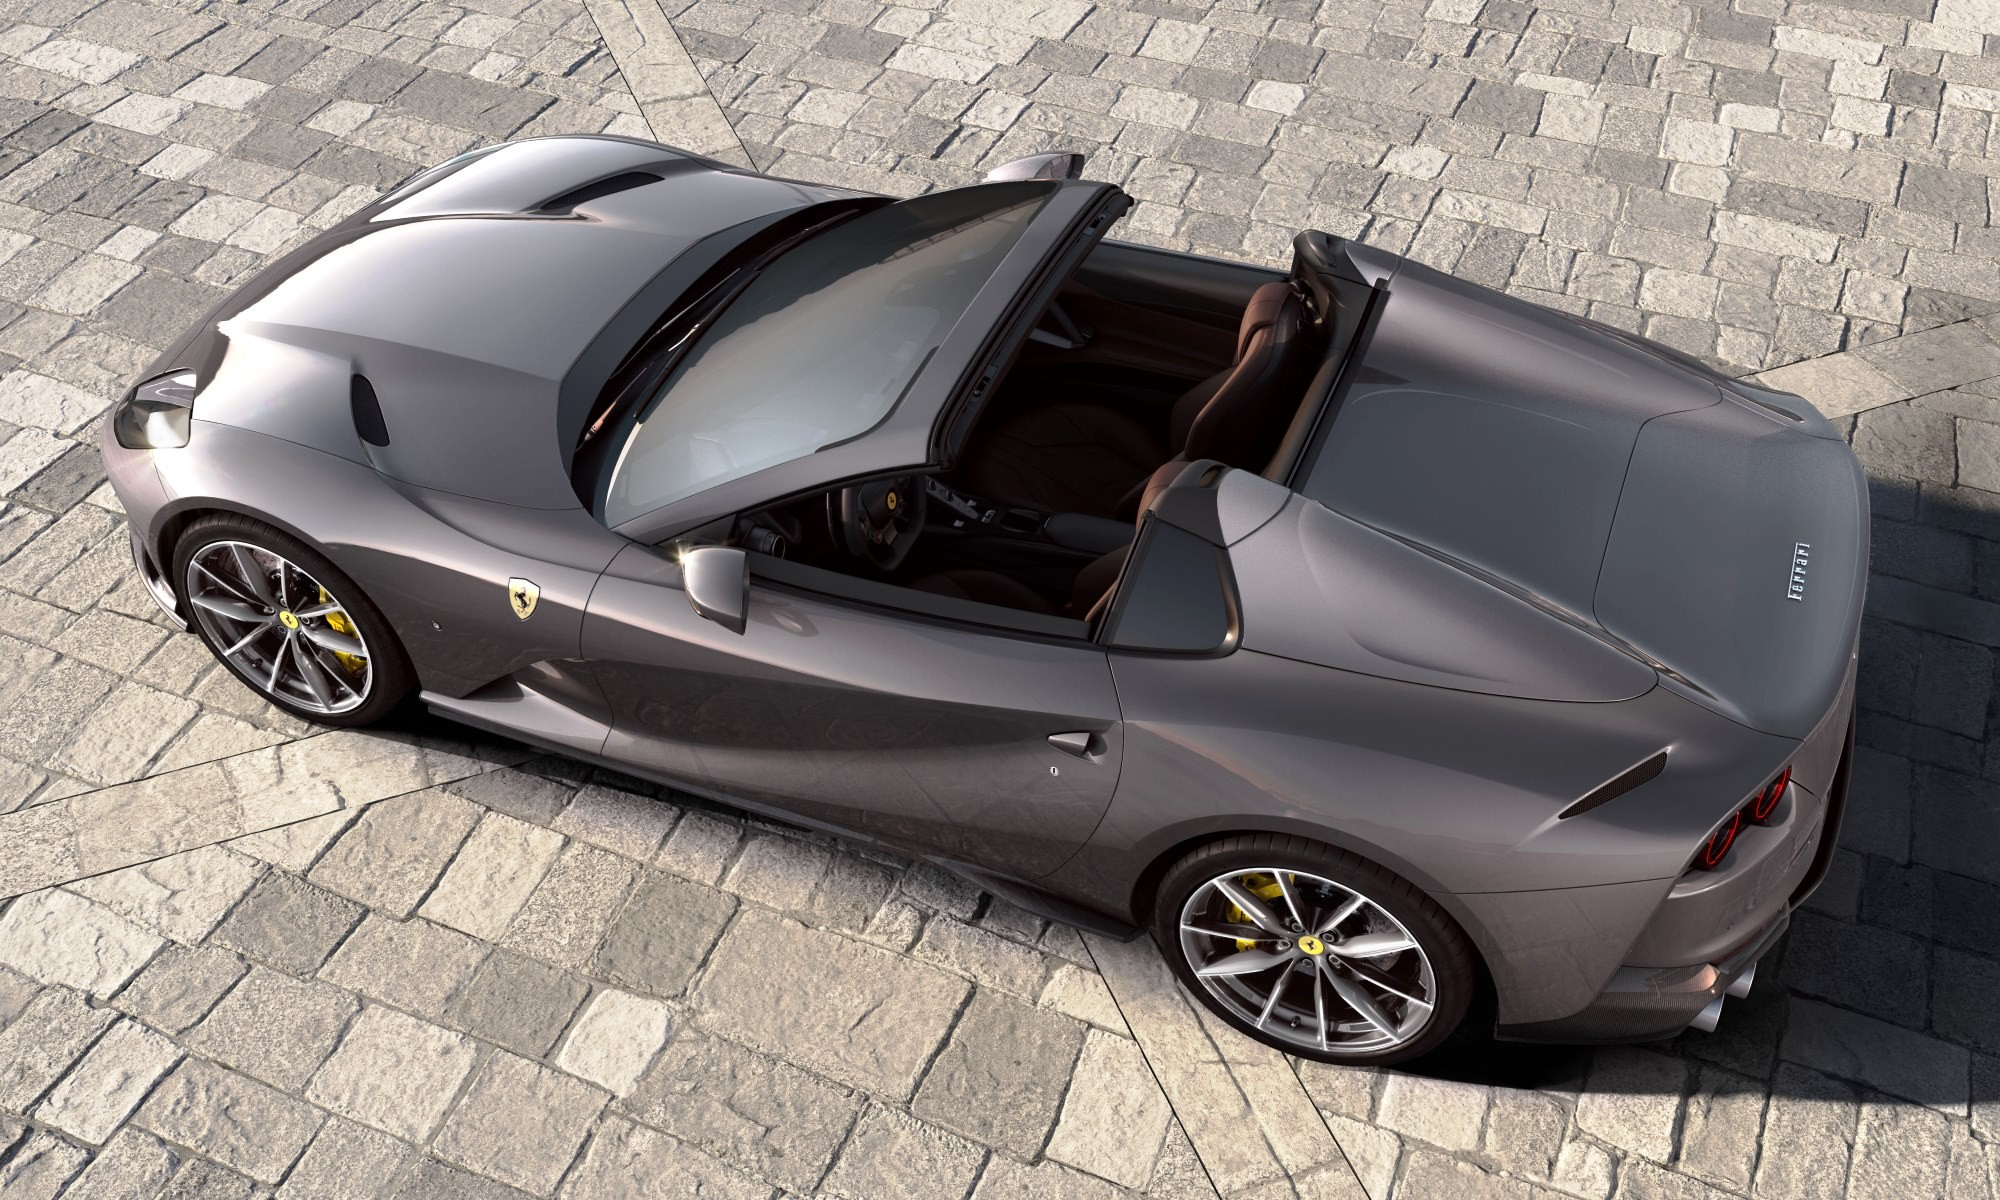 Ferrari 812 Gts And F8 Spider Are New Drop Top Models From Maranello